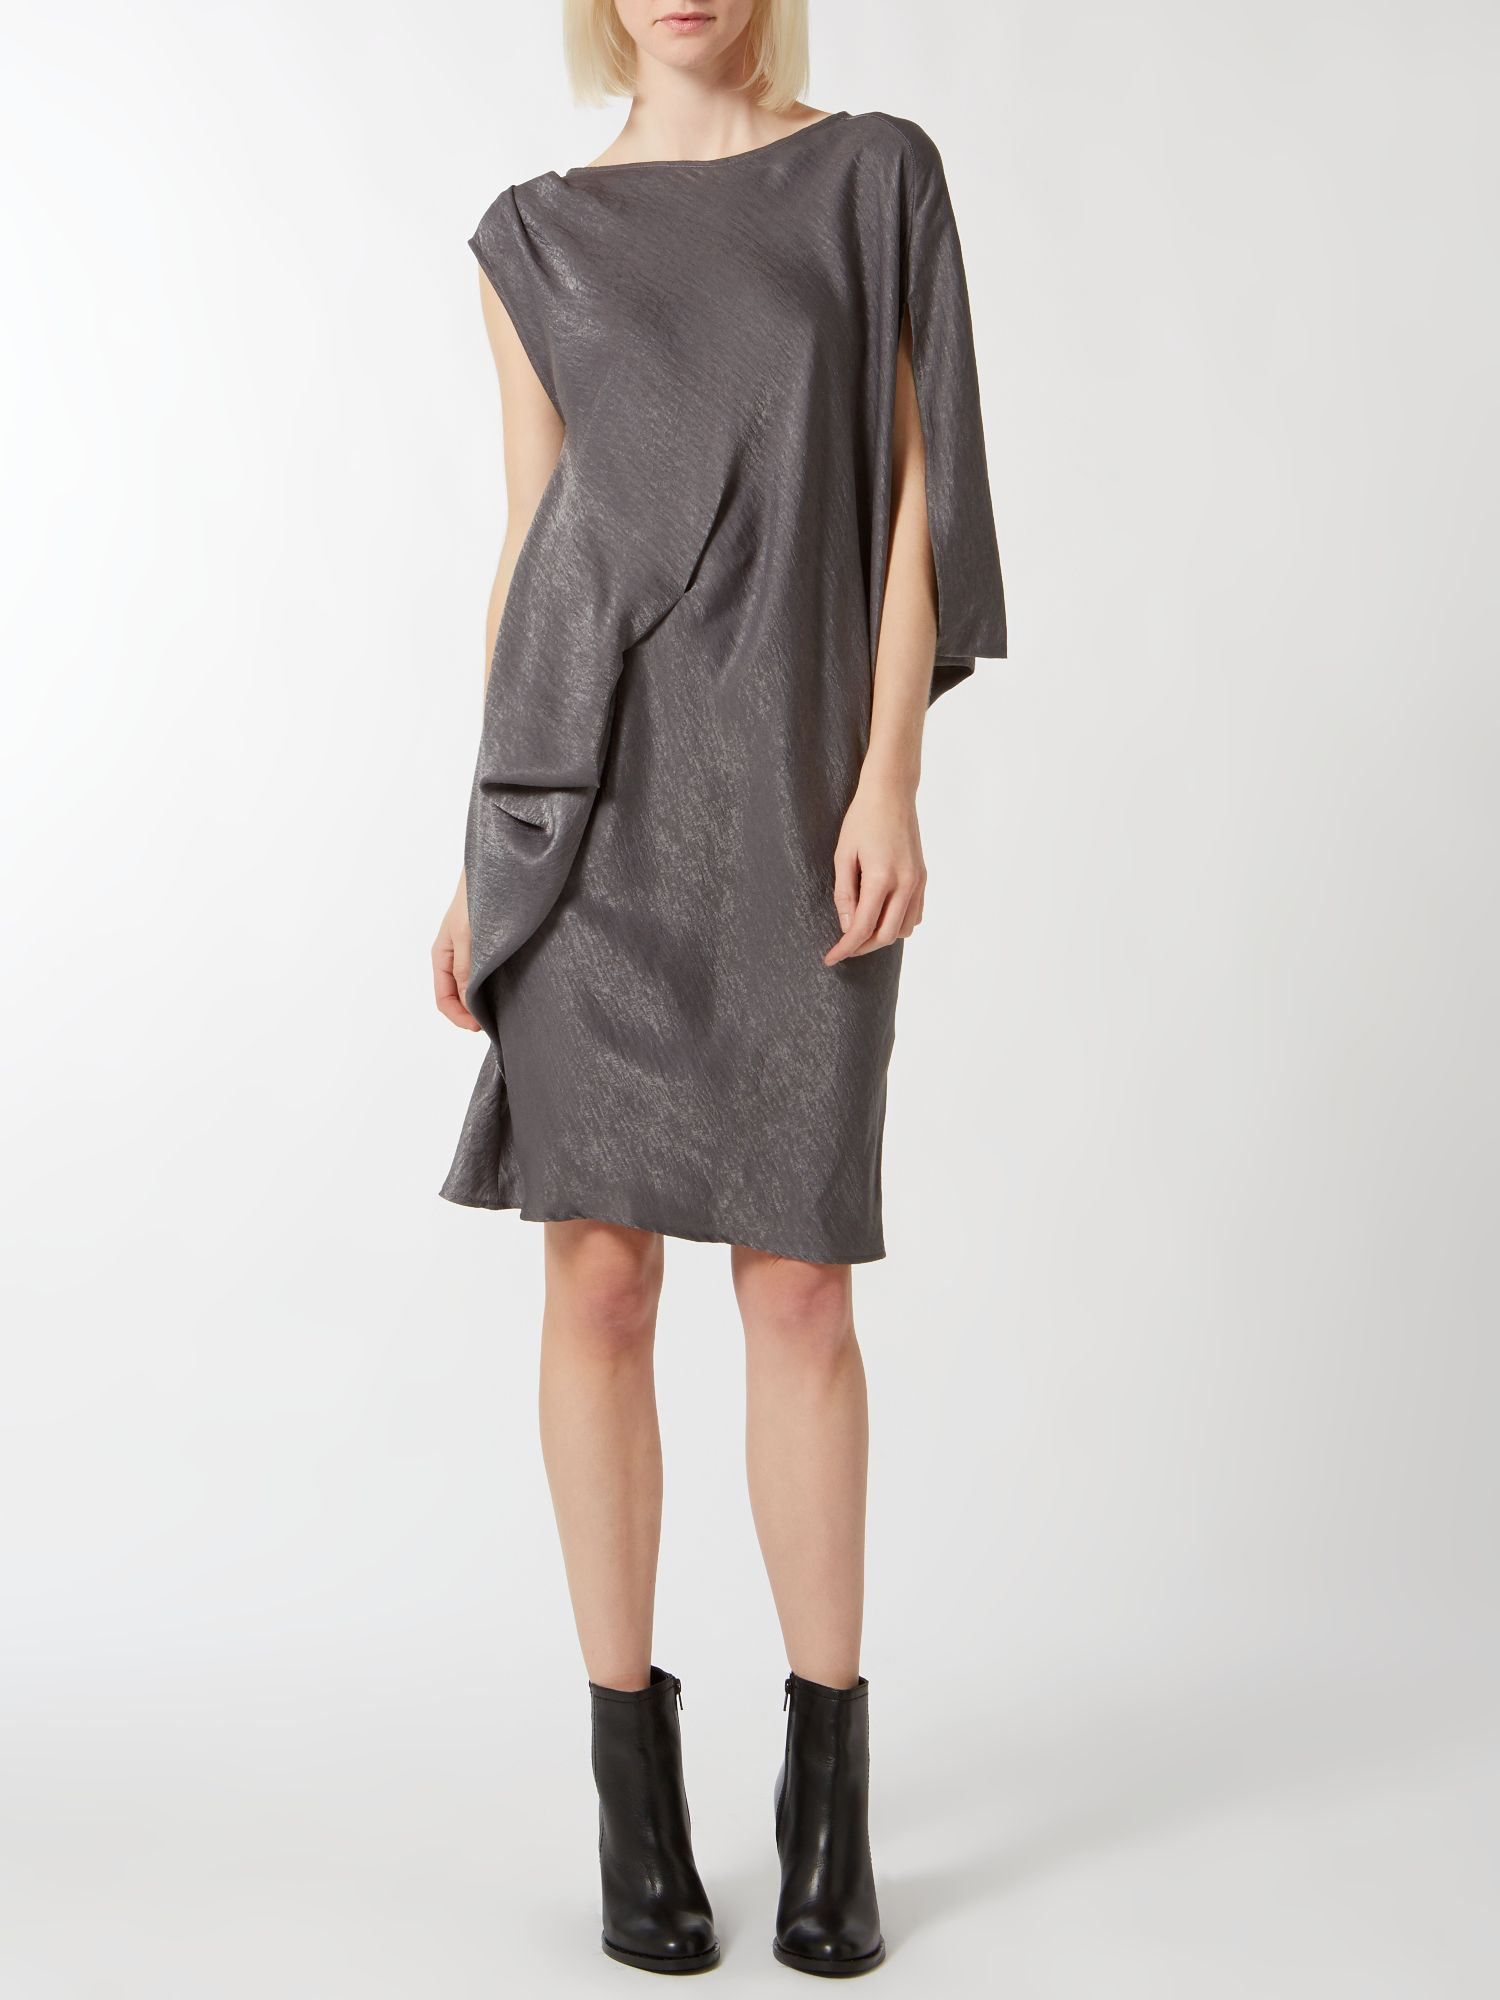 Drape cocoon dress